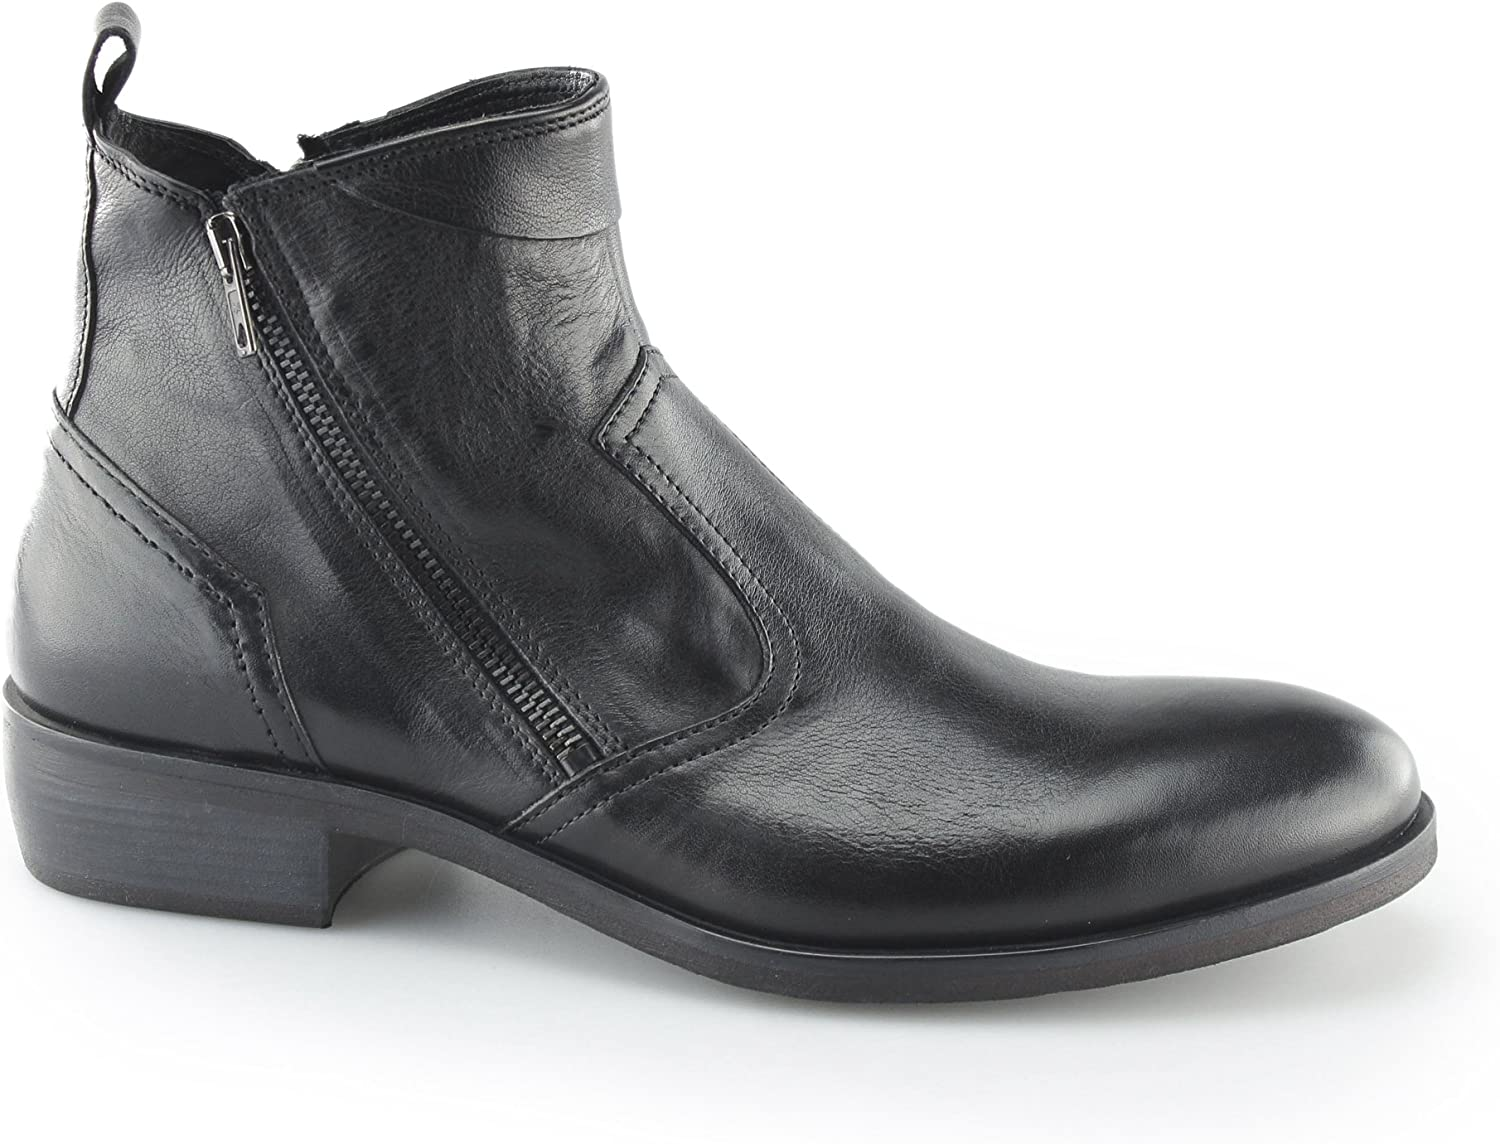 Machete Weston Mens Smooth Leather Zip Up Up Up Vintage Look Heeled Ankle Boots svart  spara på clearance